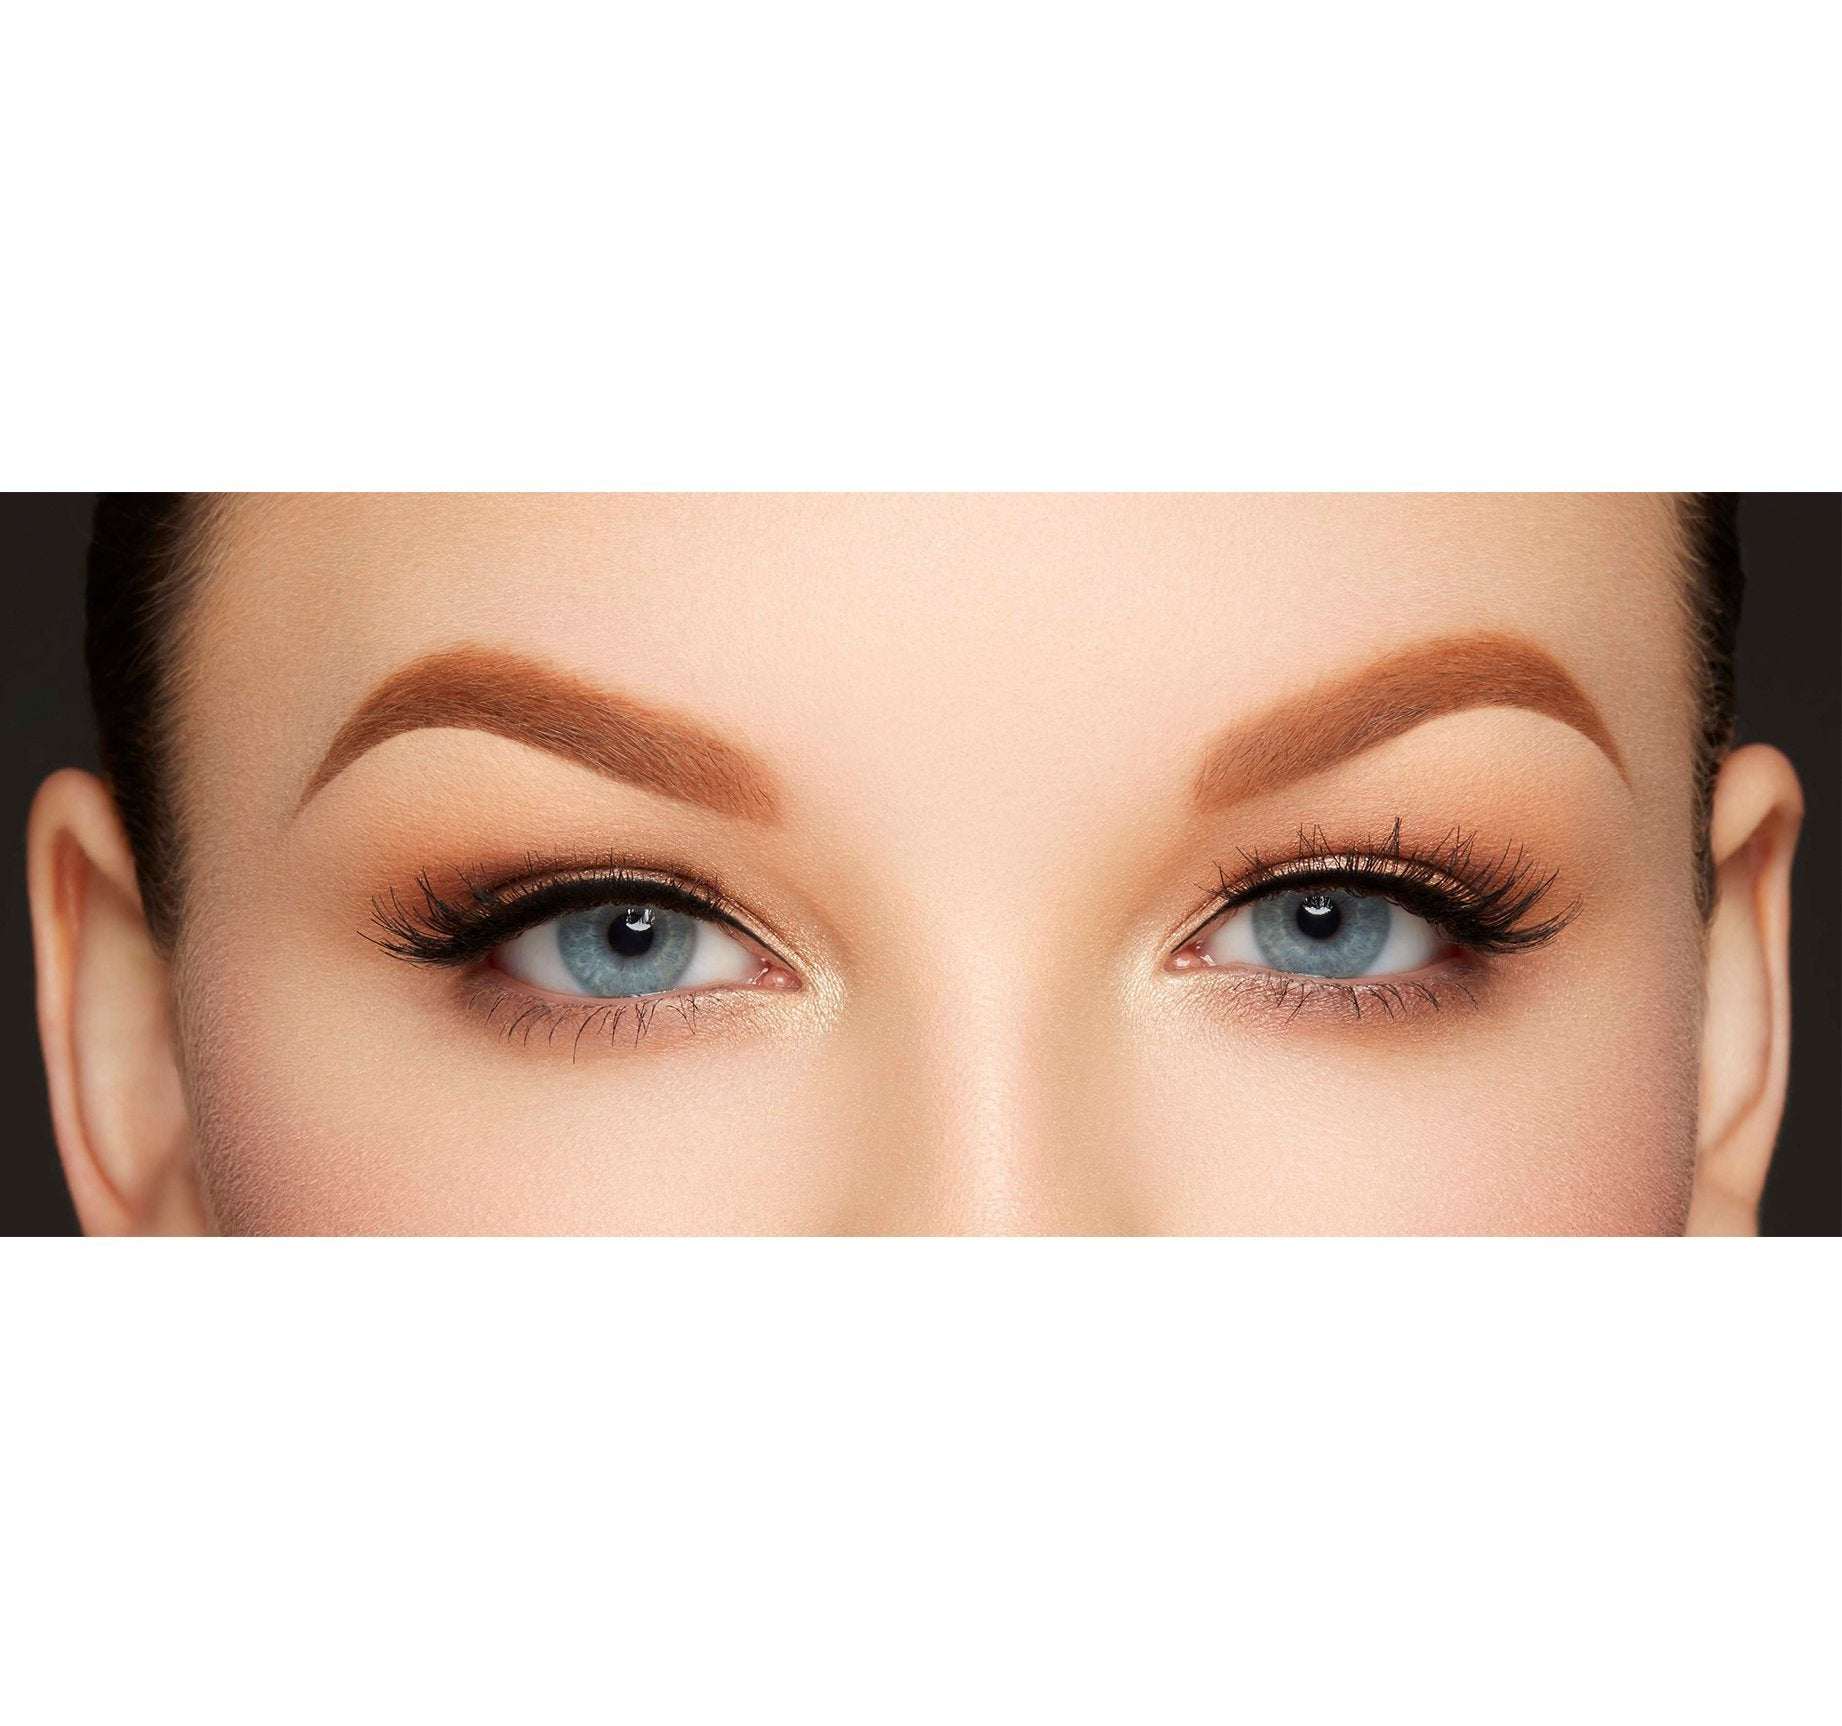 ARCH OBSESSIONS BROW KIT - ALMOND, view larger image